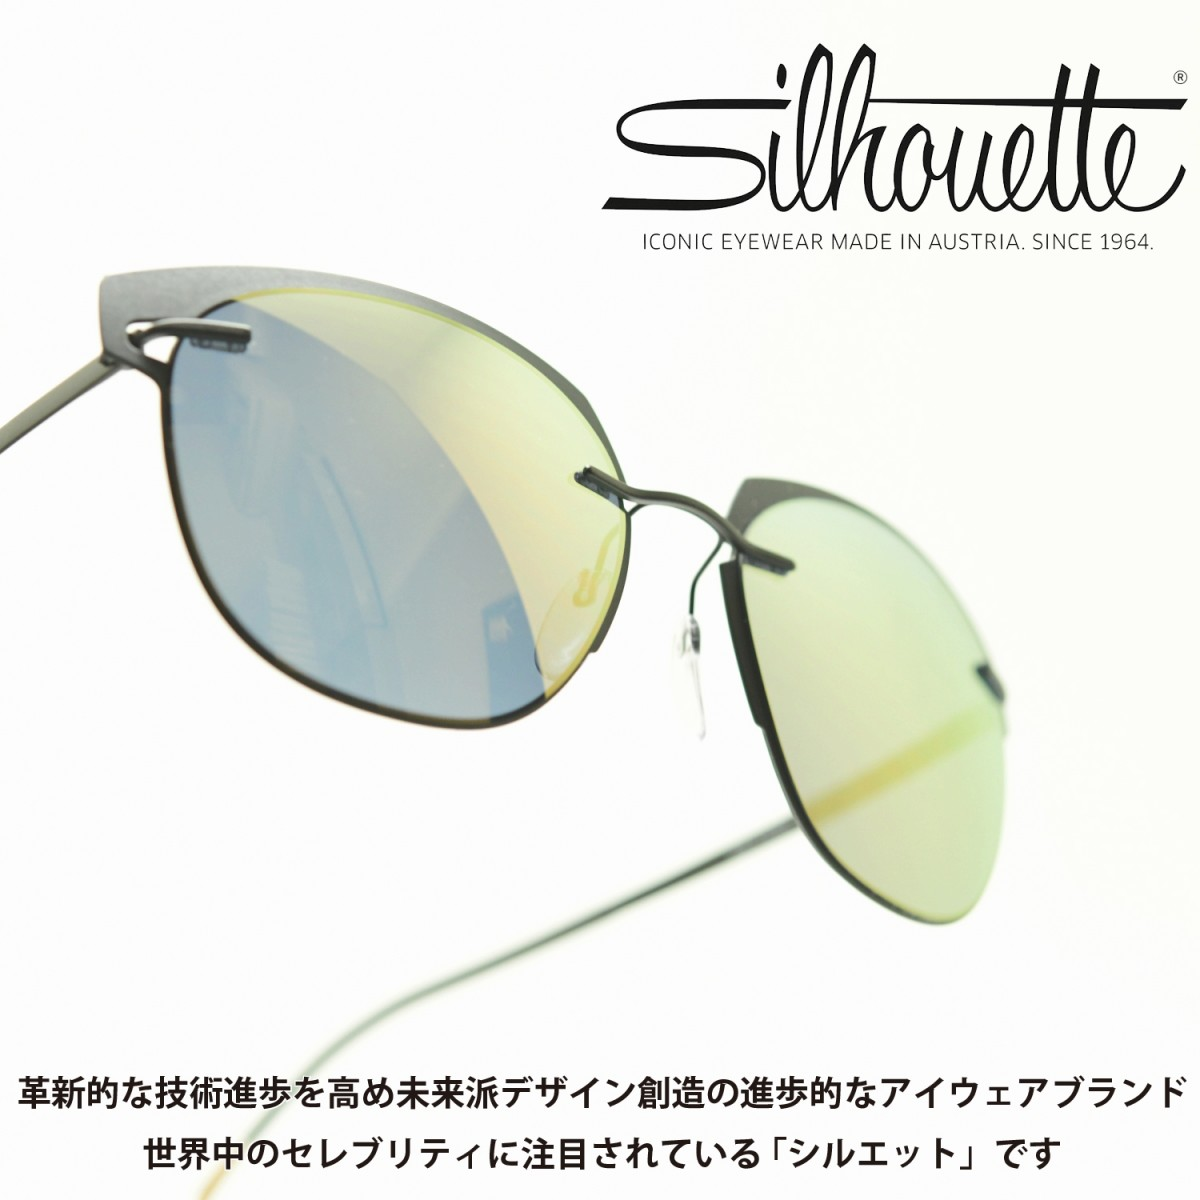 Silhouette シルエットAccent Shadesコレクション 8702 75 9140